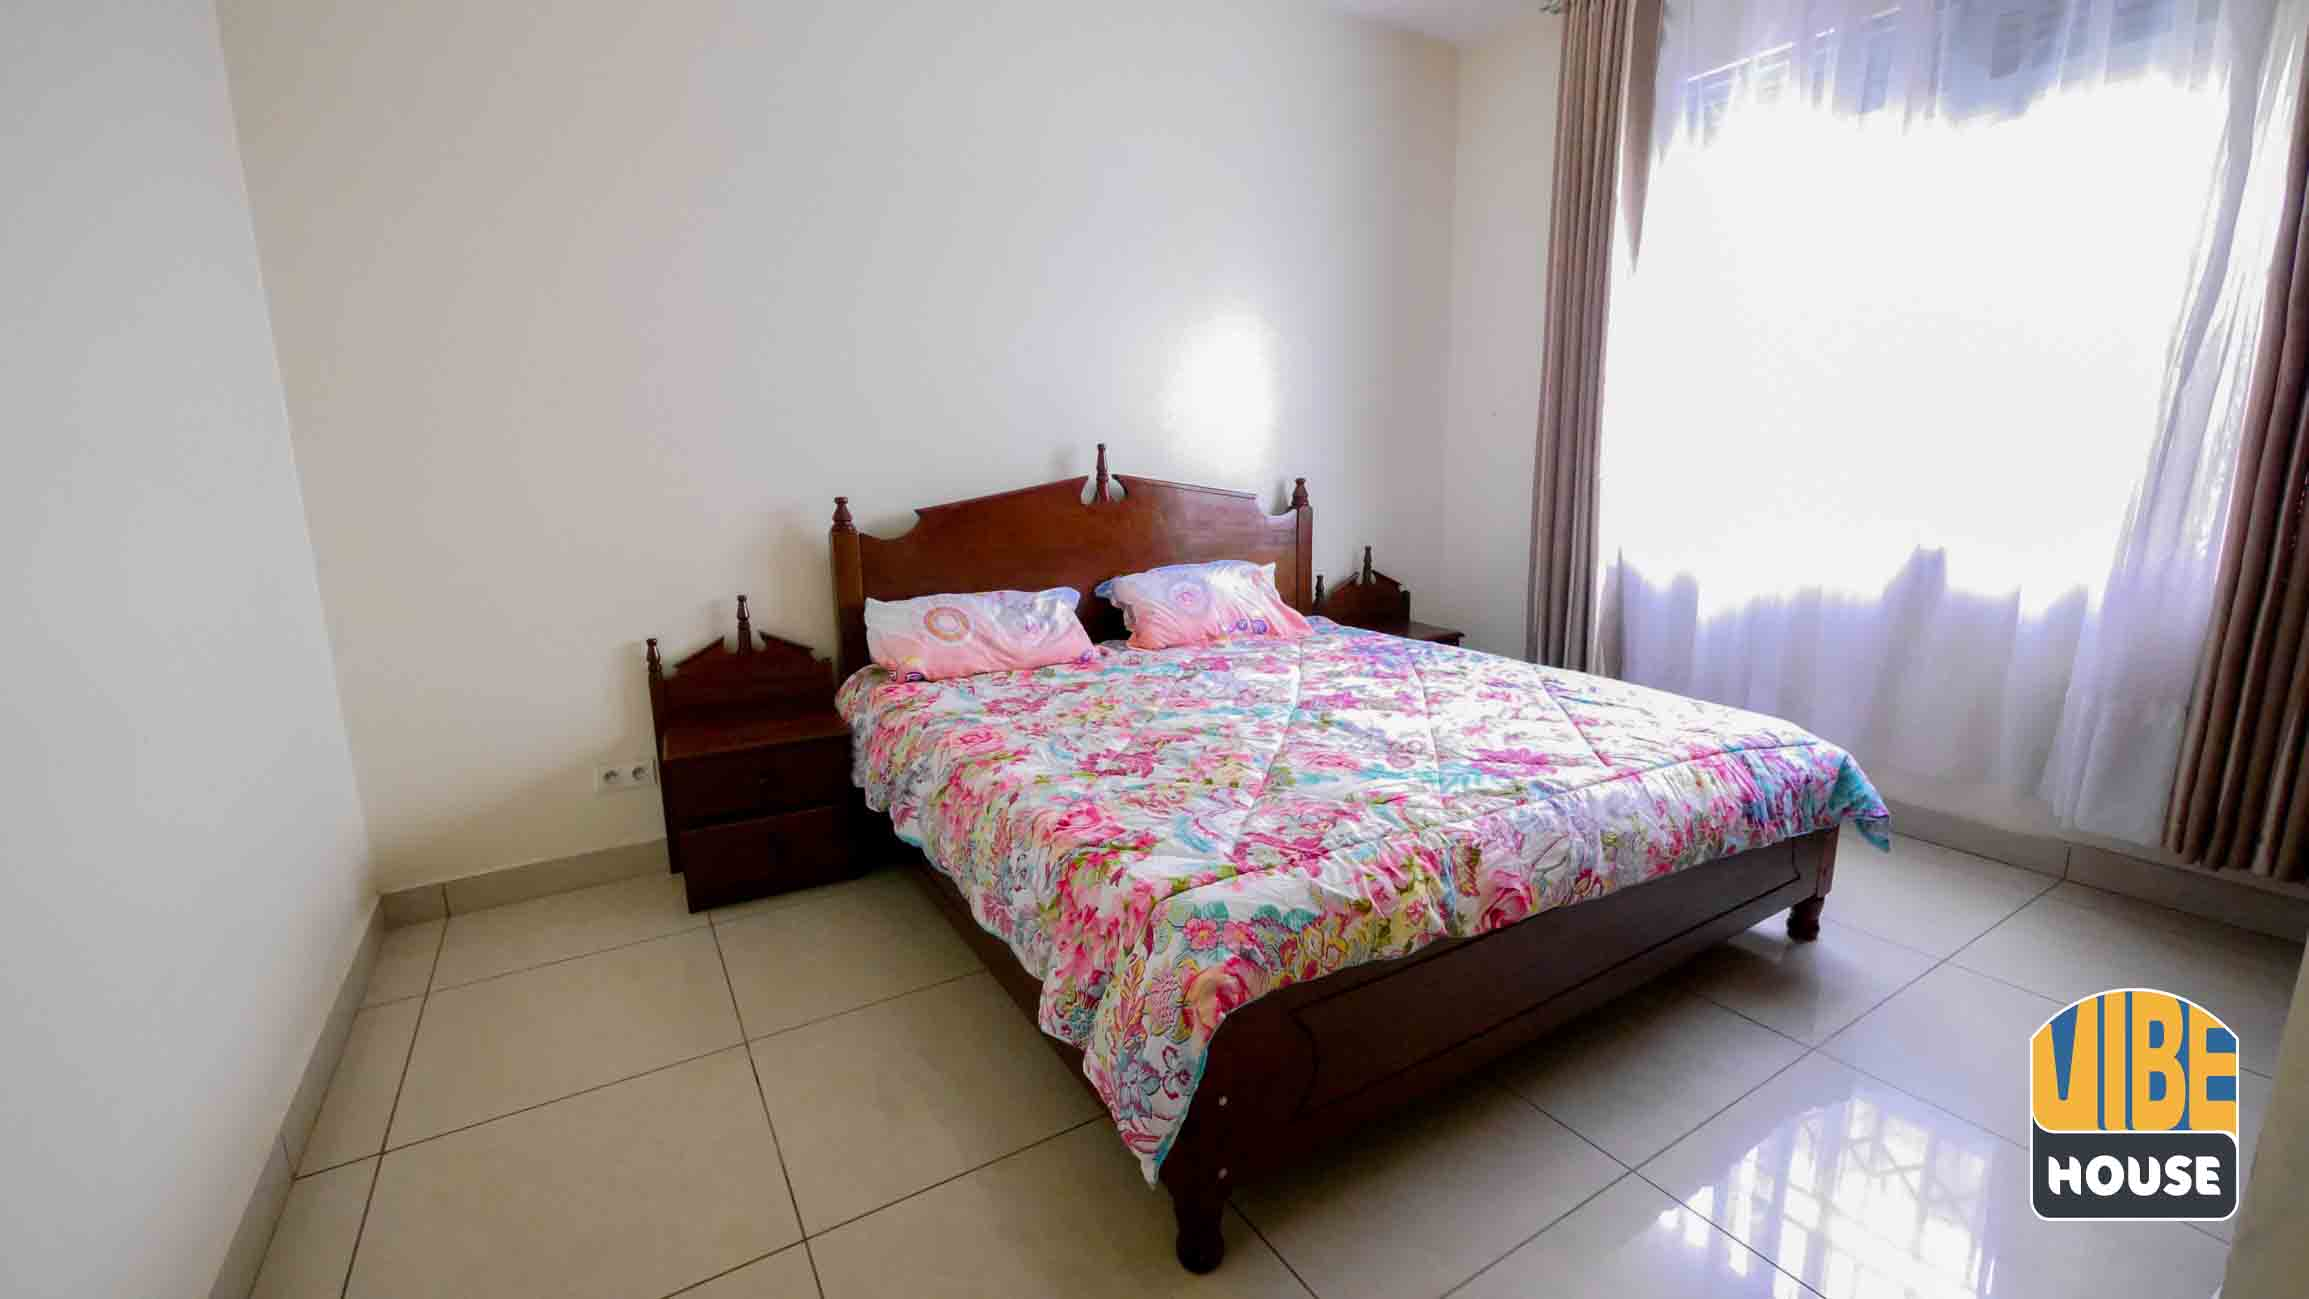 House for rent with pool in Kibagabaga, Kigali